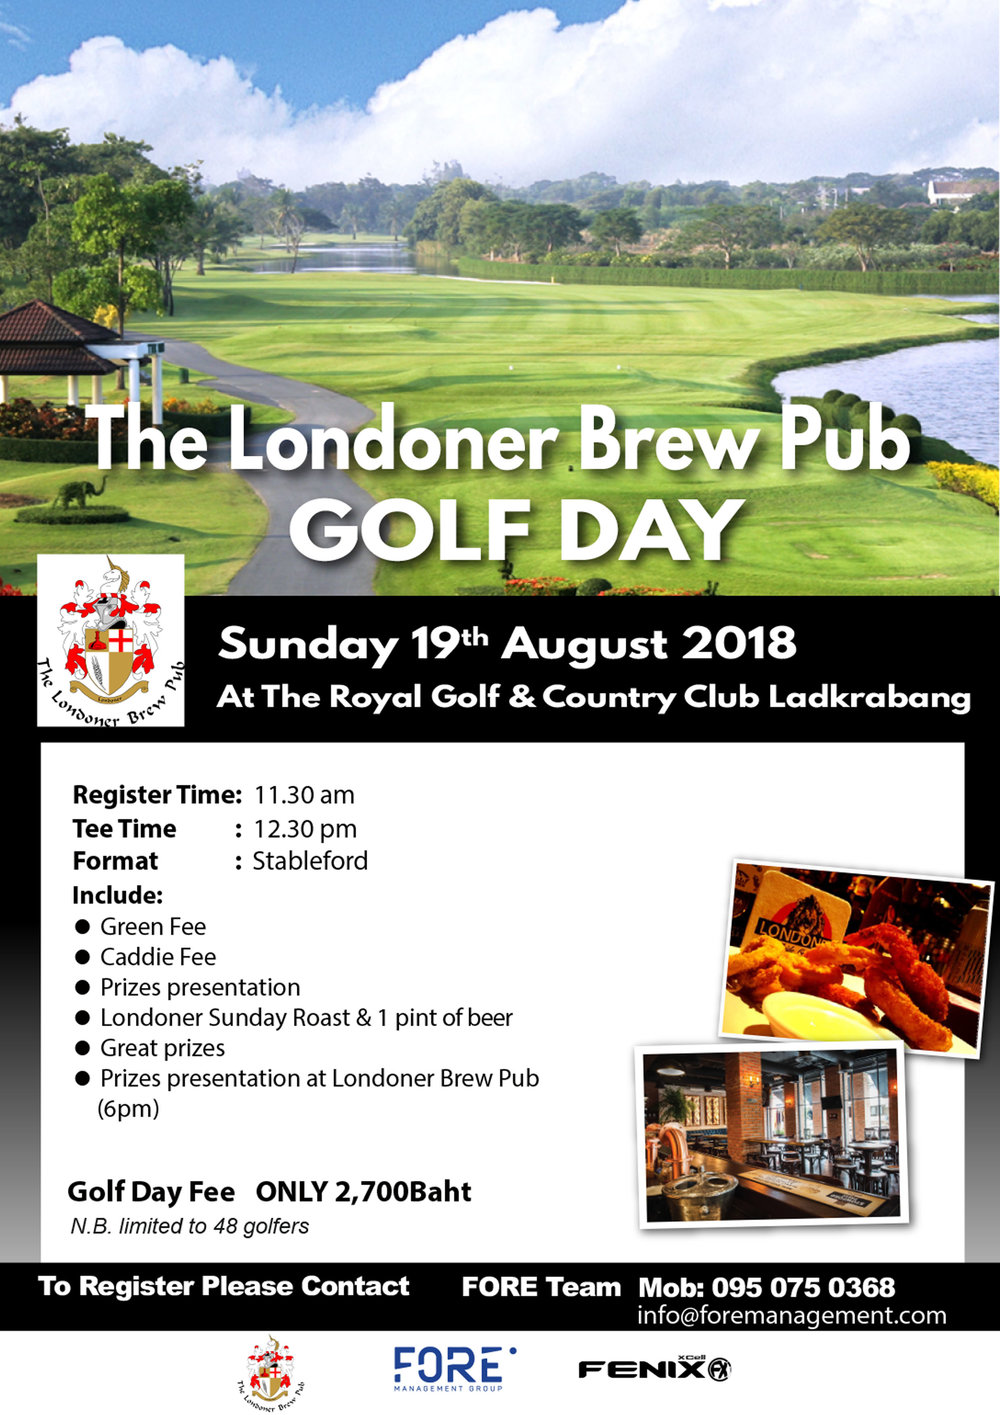 Londoner Brew Pub Golf Day_19AUG2018.jpg